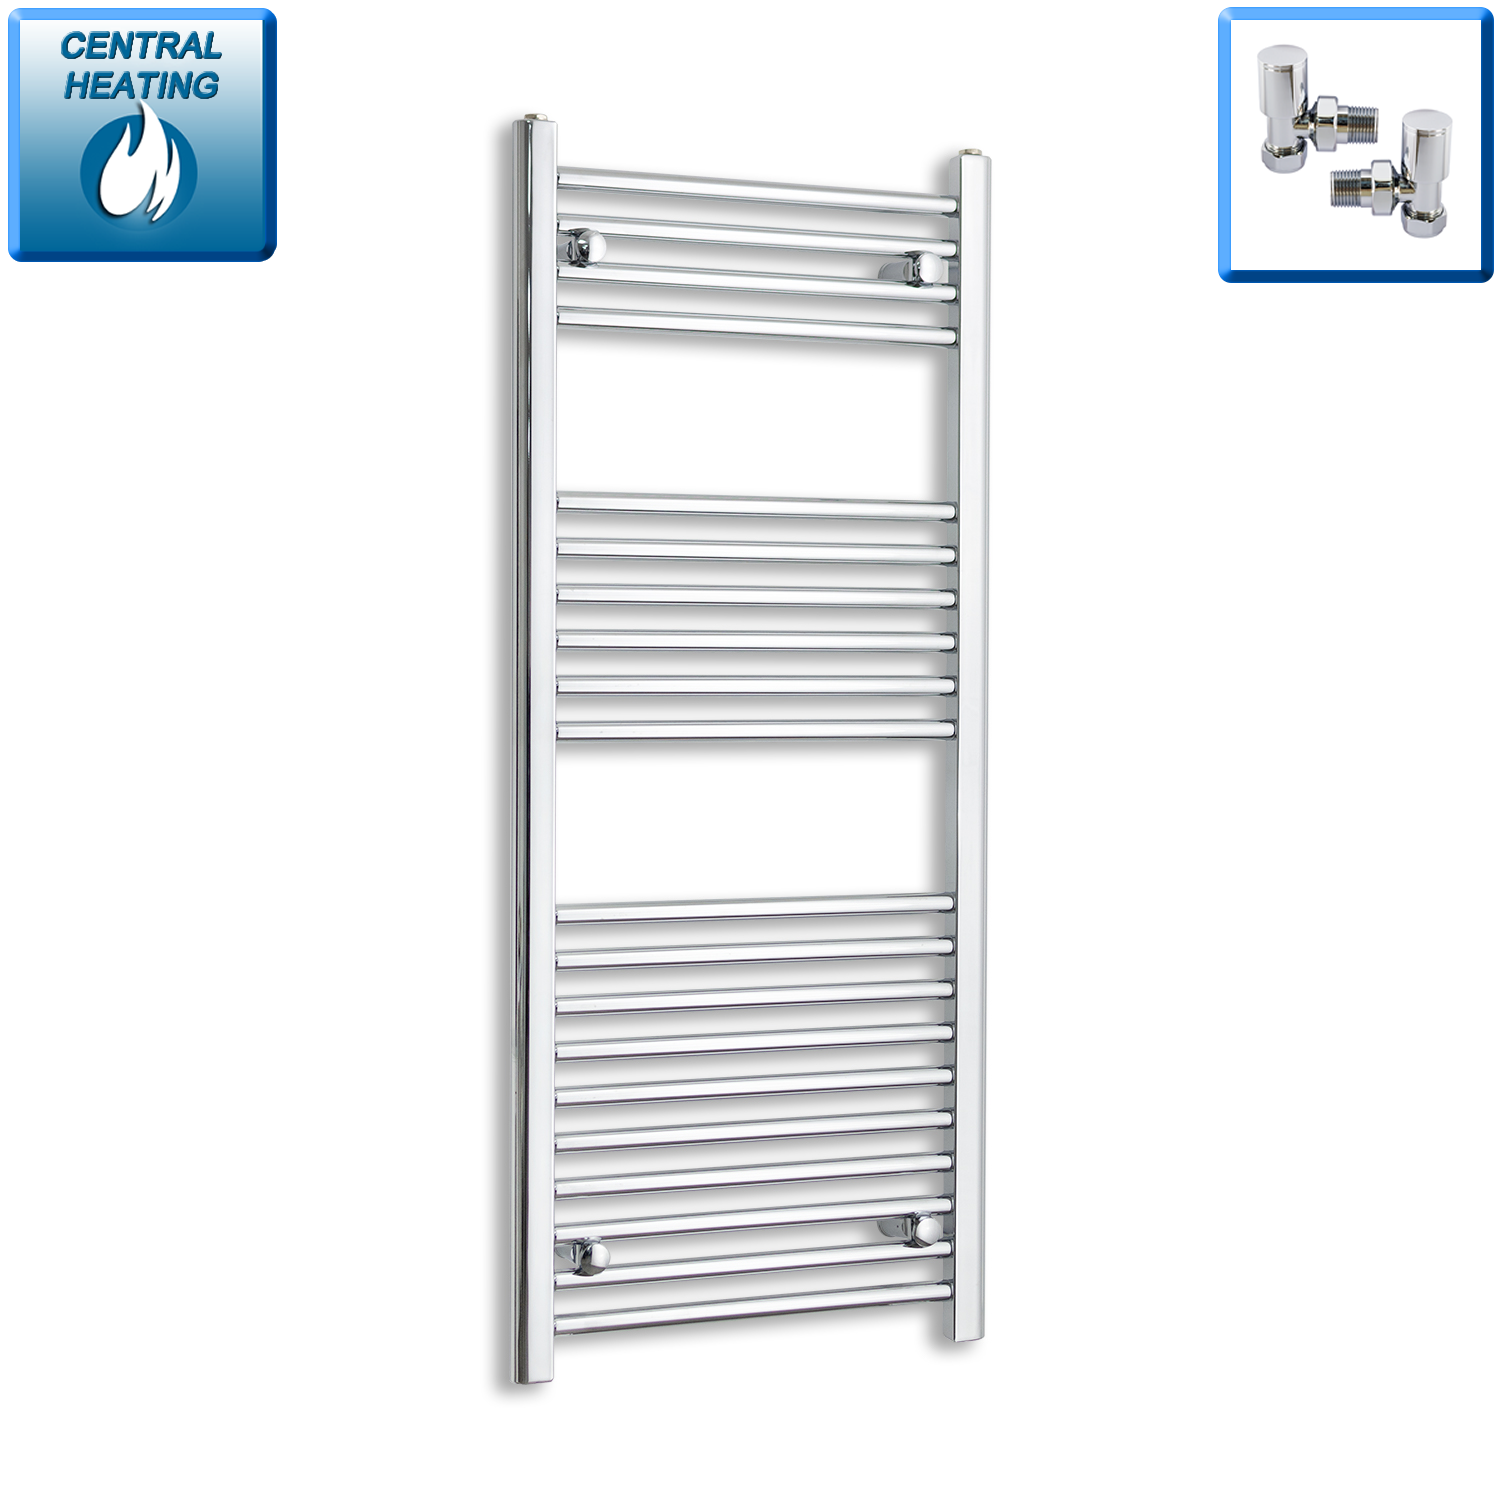 600mm Wide 1200mm High Straight Chrome Heated Towel Rail Radiator Gas or Electric,With Angled Valve